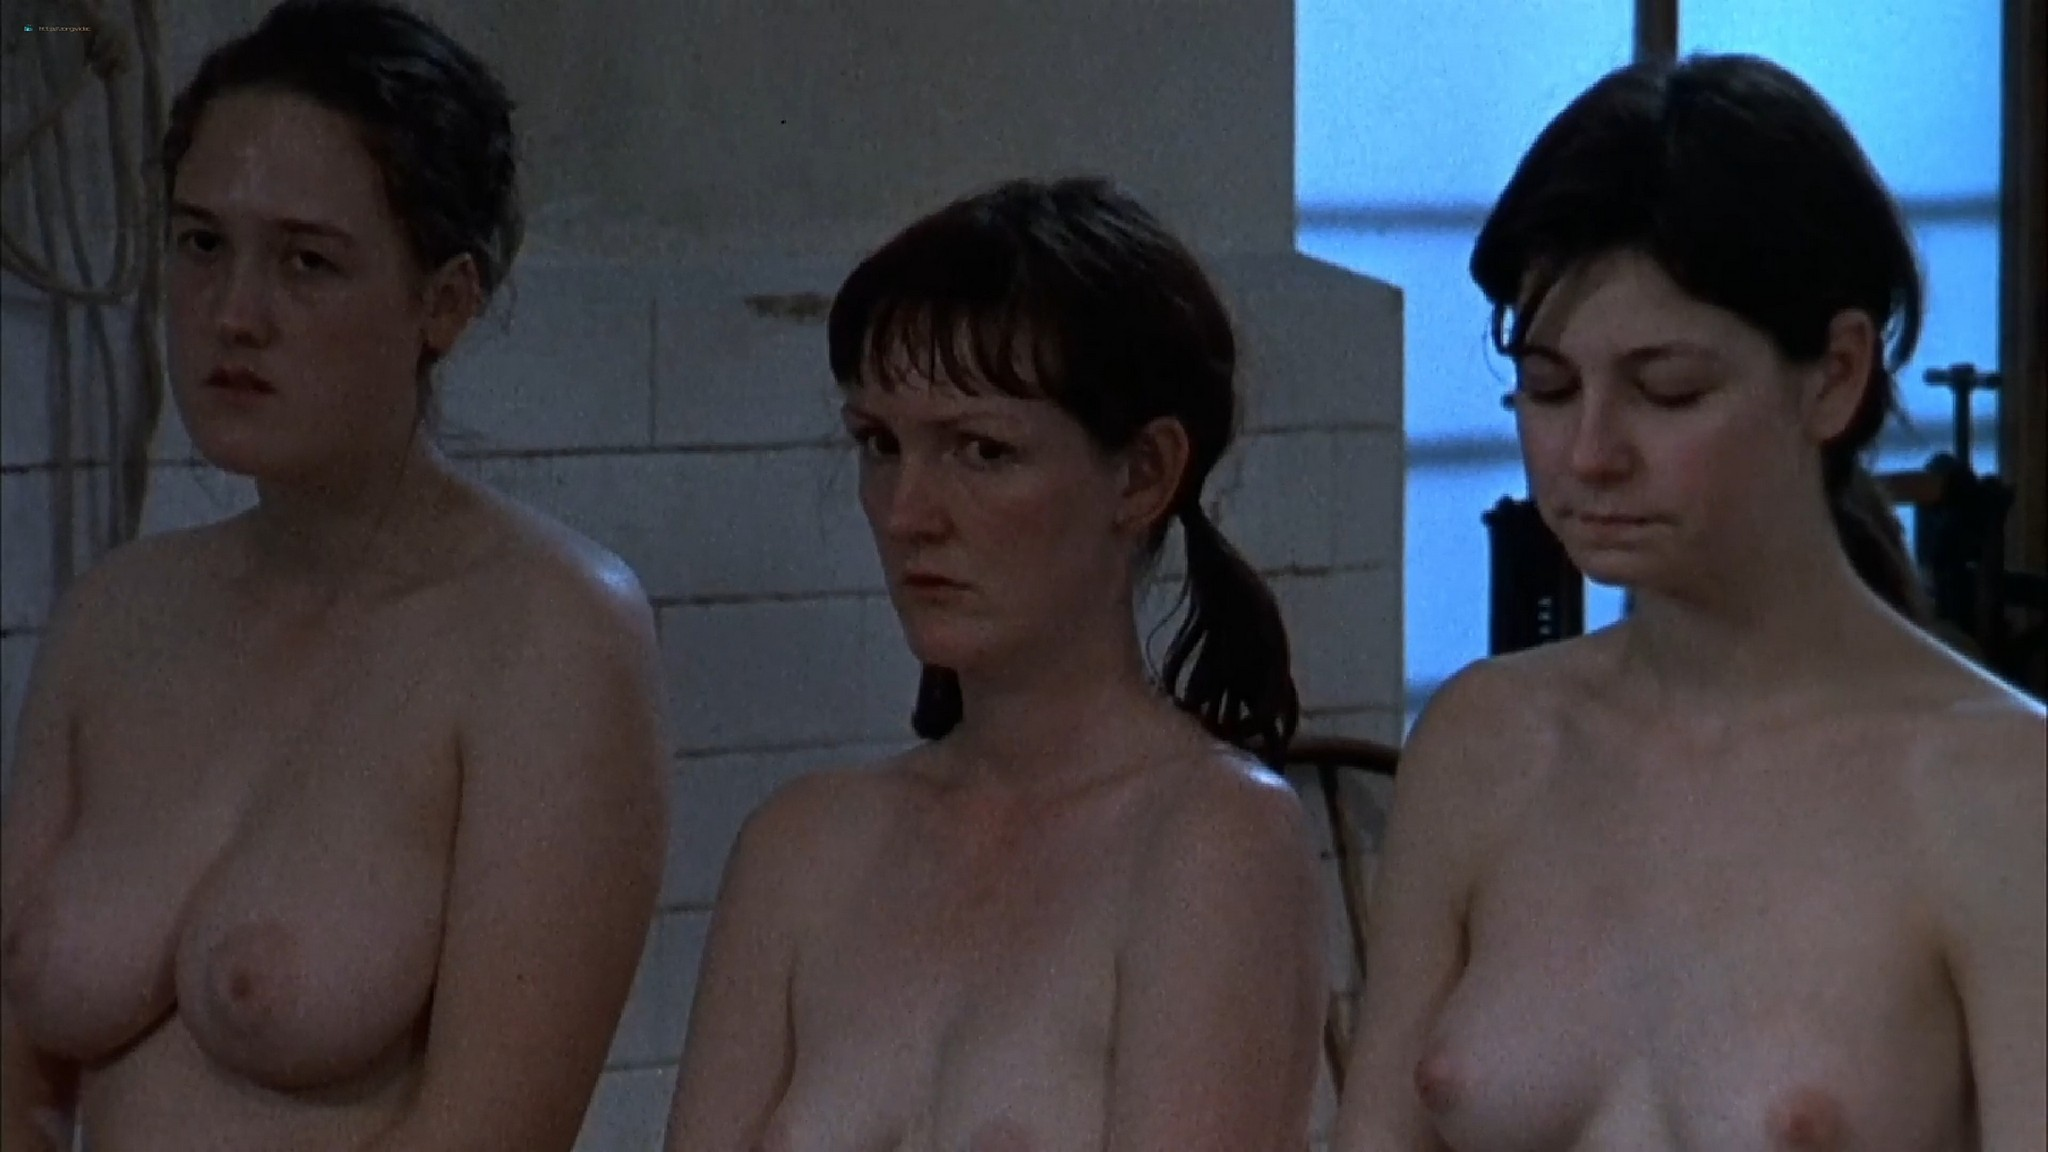 Nora Jane Noone nude full frontal Anne Marie Duff and another full frontal too The Magdalene Sisters 2002 1080p Web 6